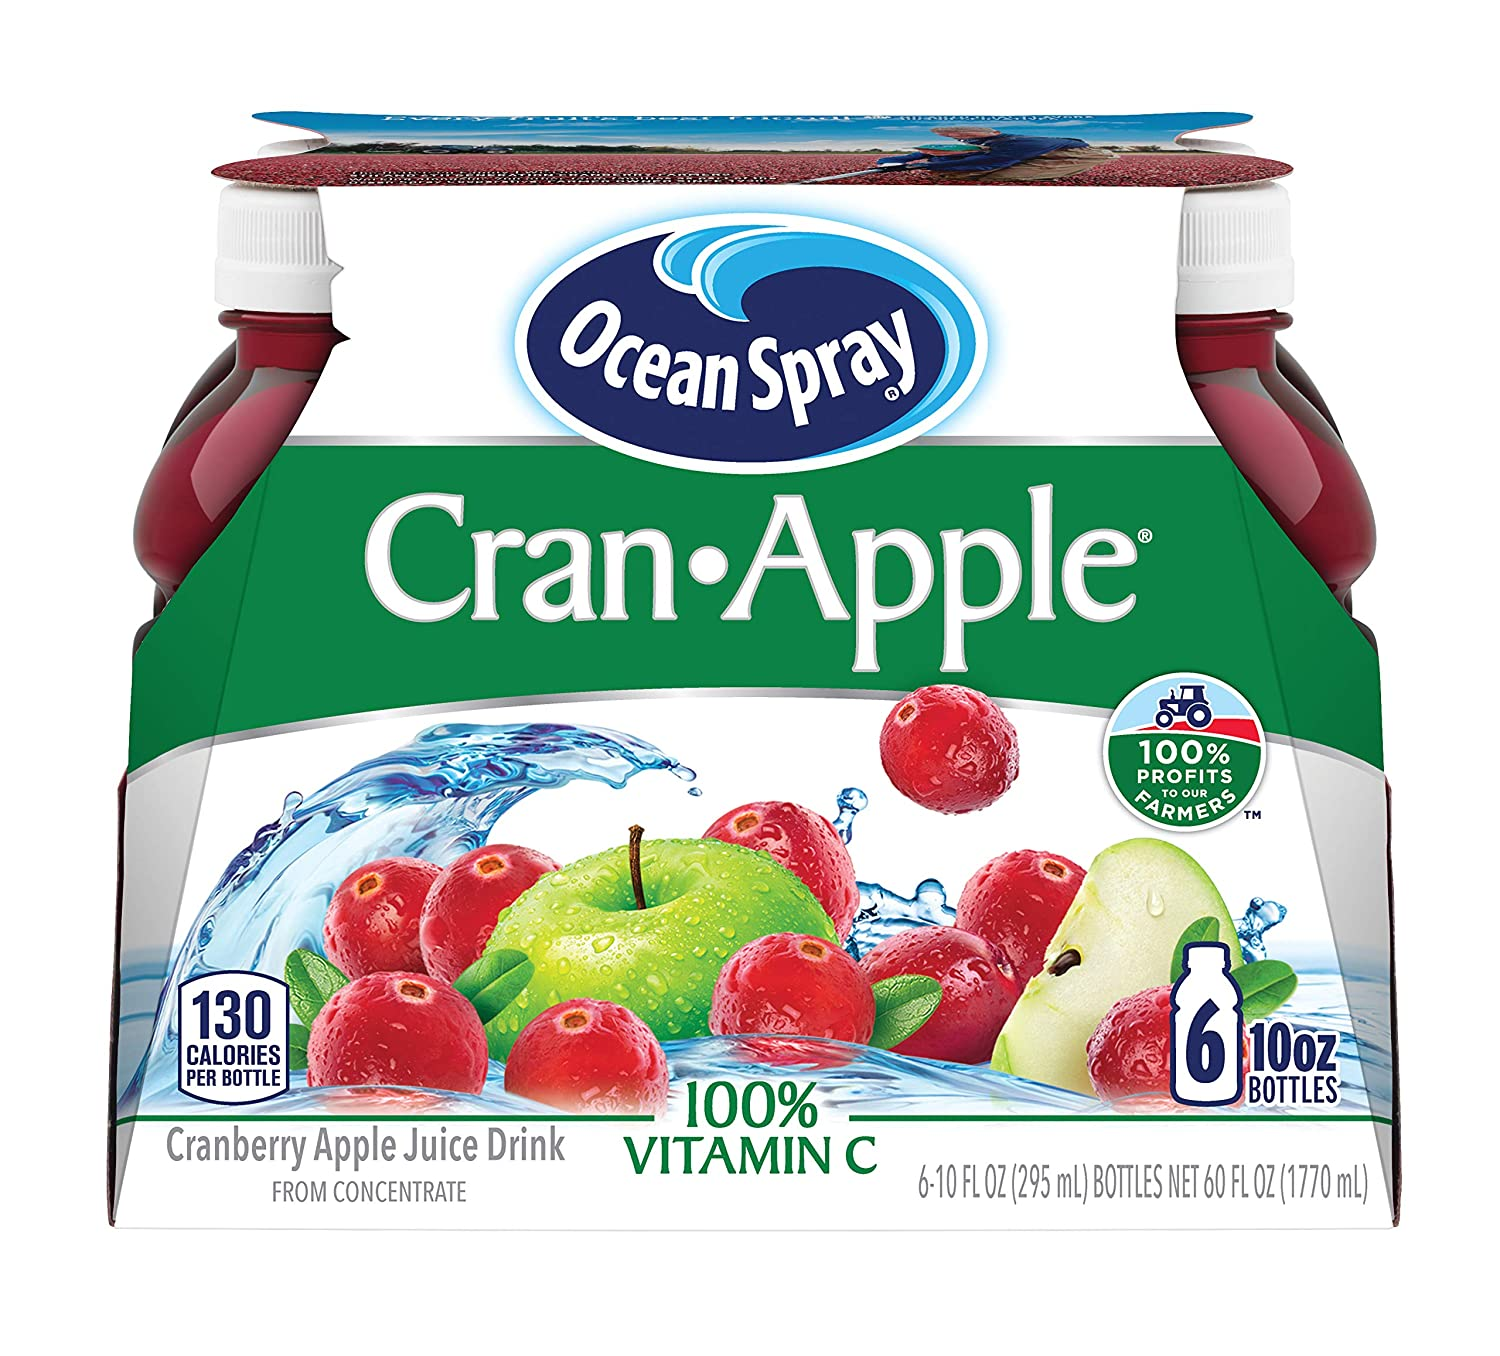 Archway Ocean Spray CranApple 10 Ounce Count, Cranberry Apple Juice Drink, 60 Fl Oz, (Pack of 6)